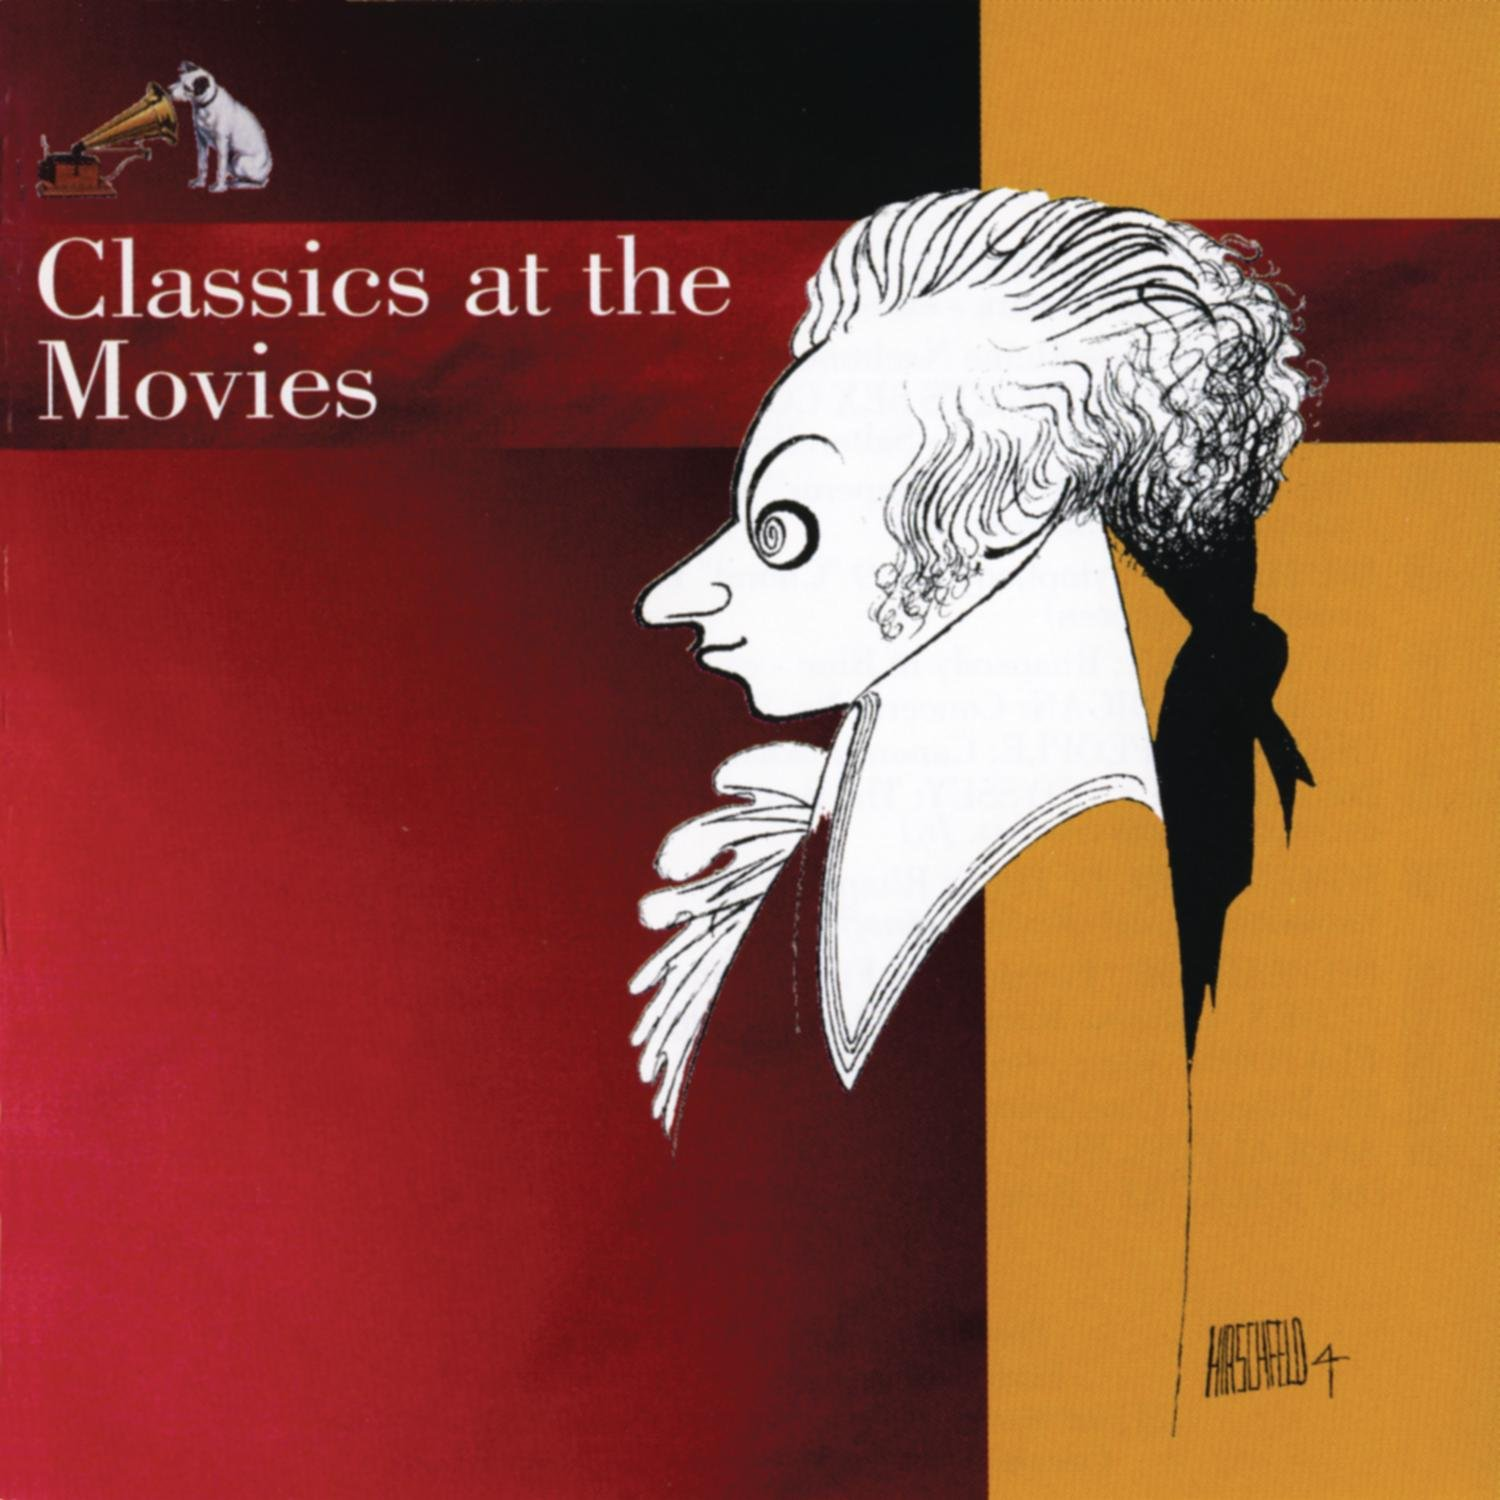 Classics at the Movies